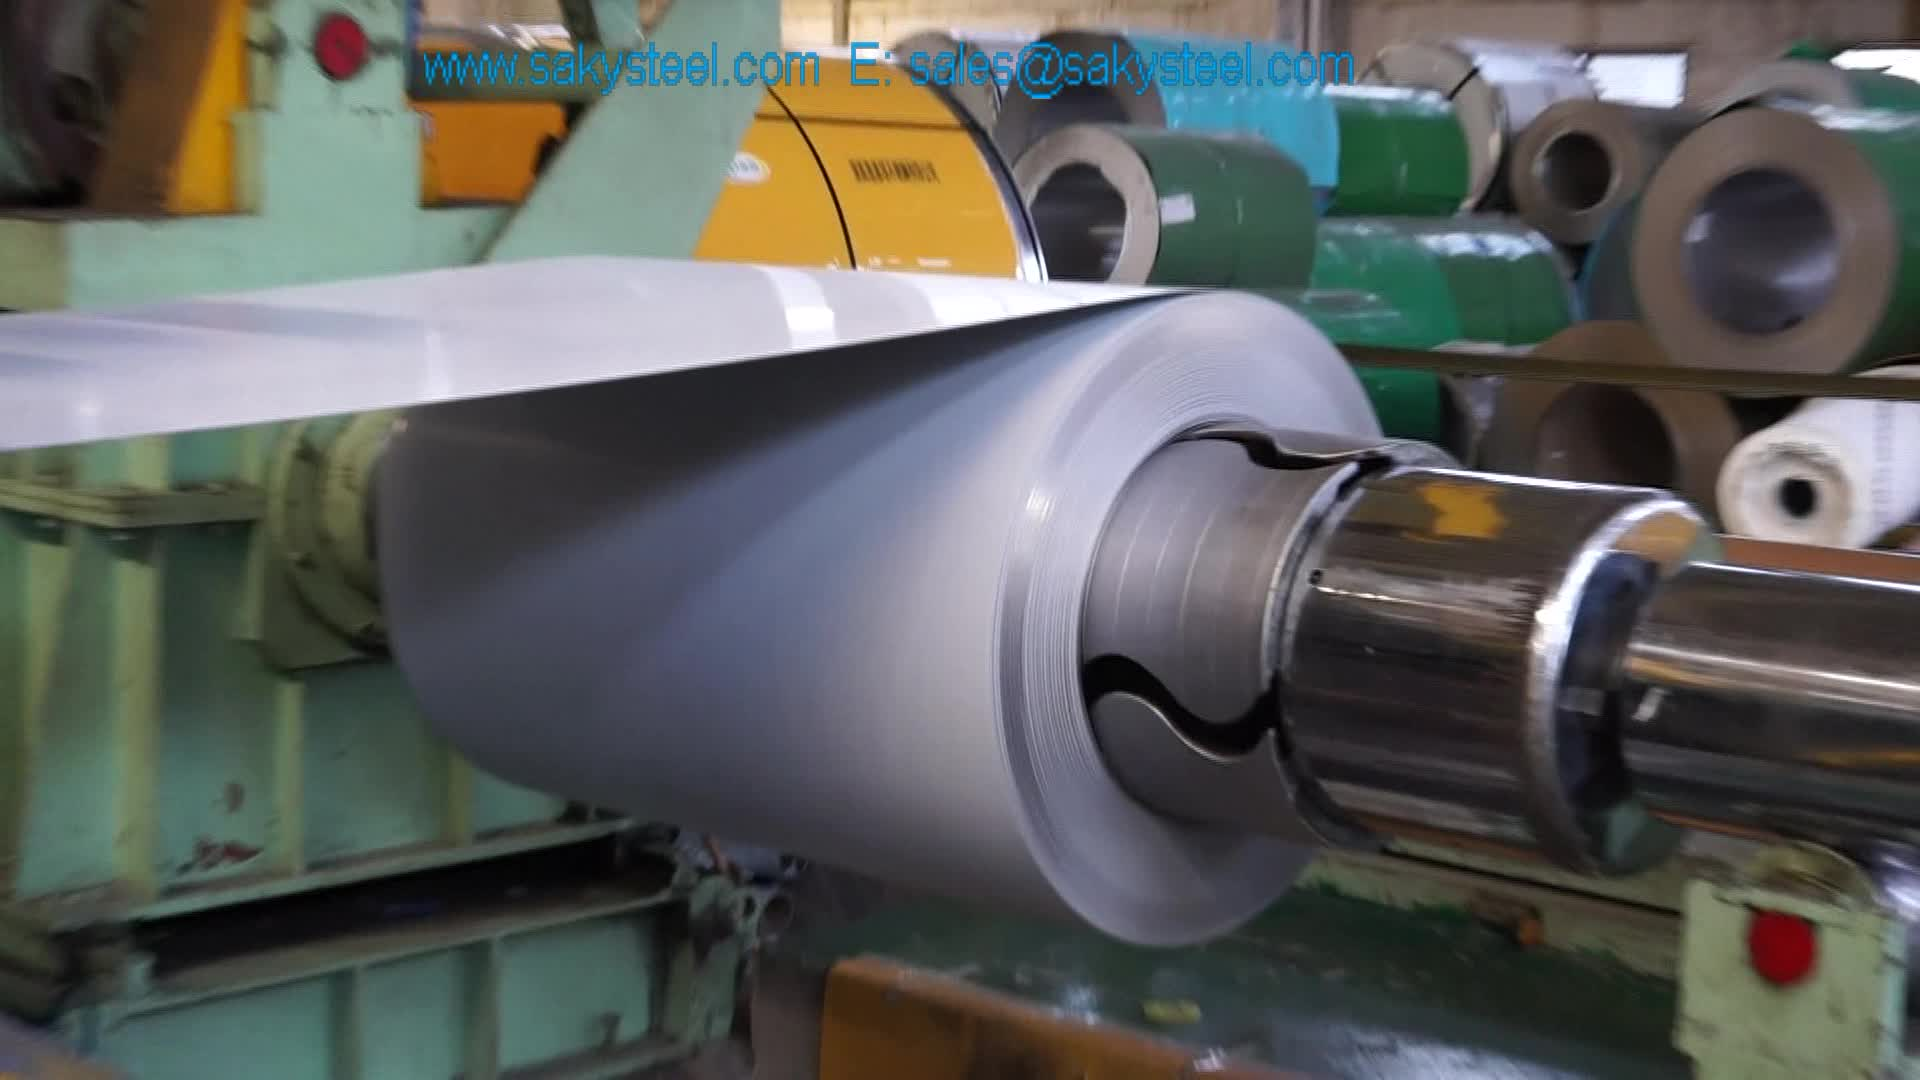 How To Cut Stainless Steel 304 Sheets As Chinese Standards